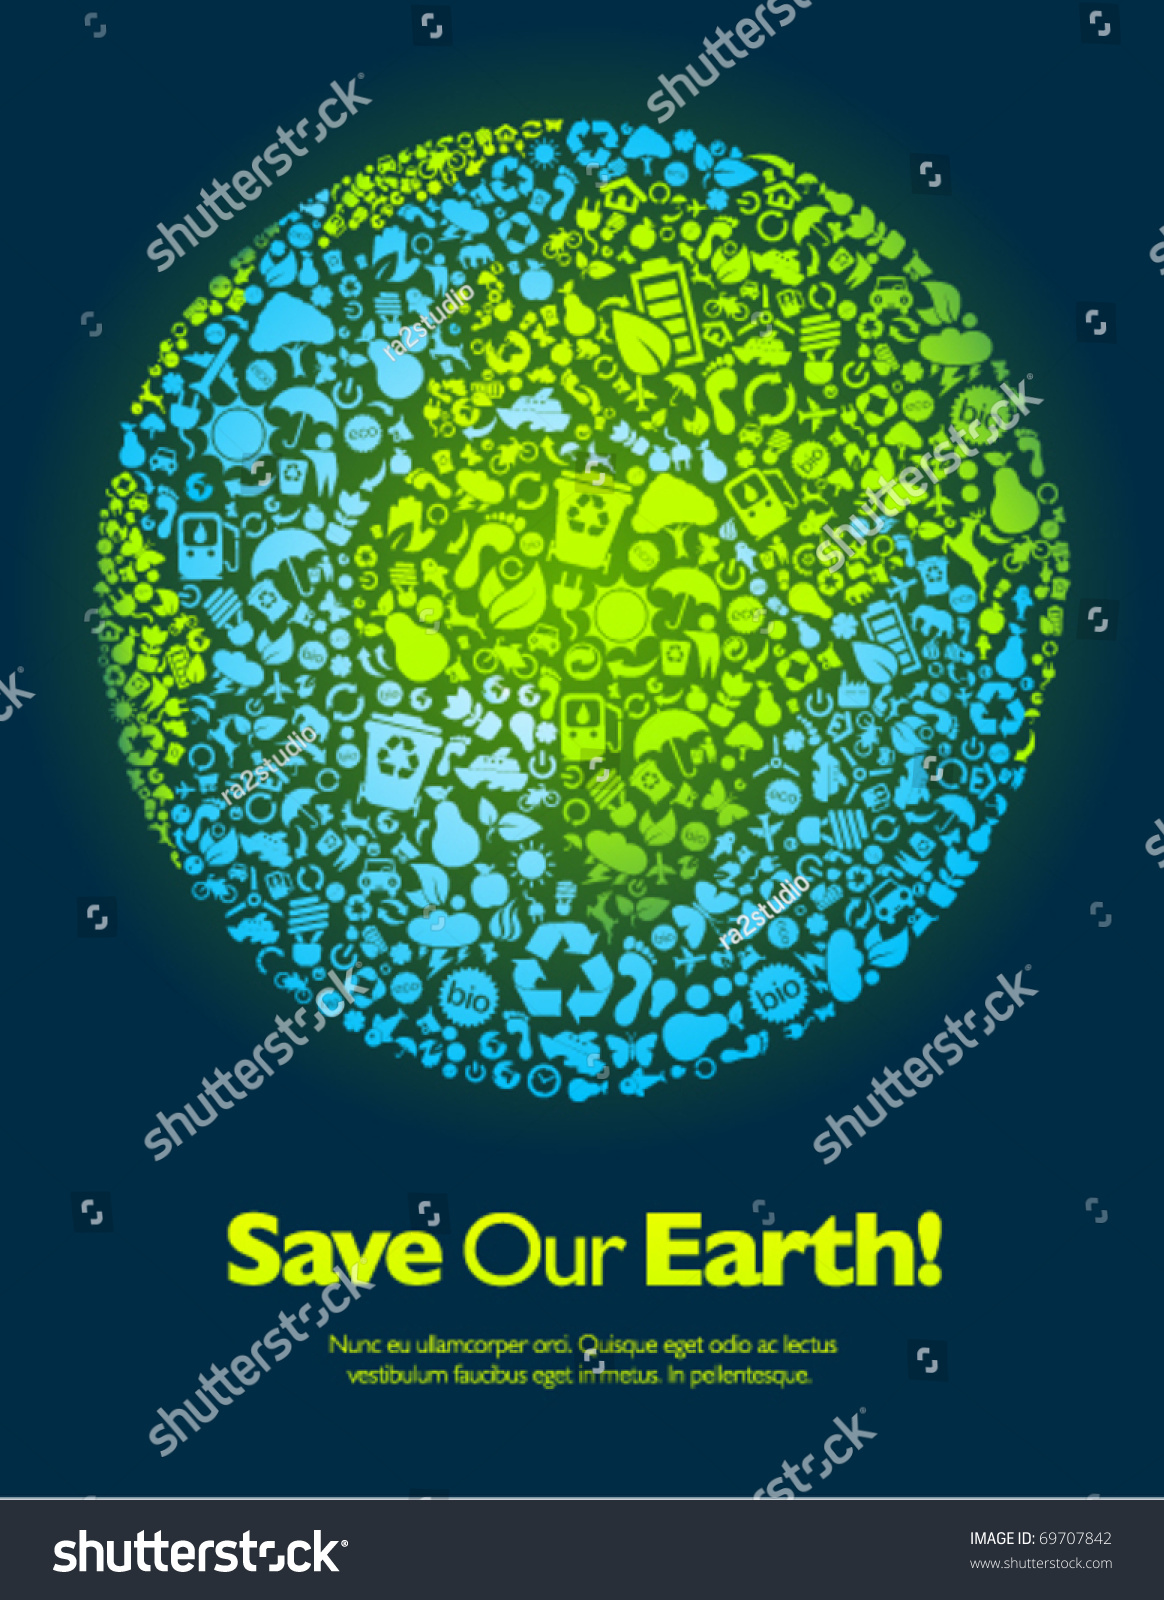 save our earth blue green poster stock vector 69707842